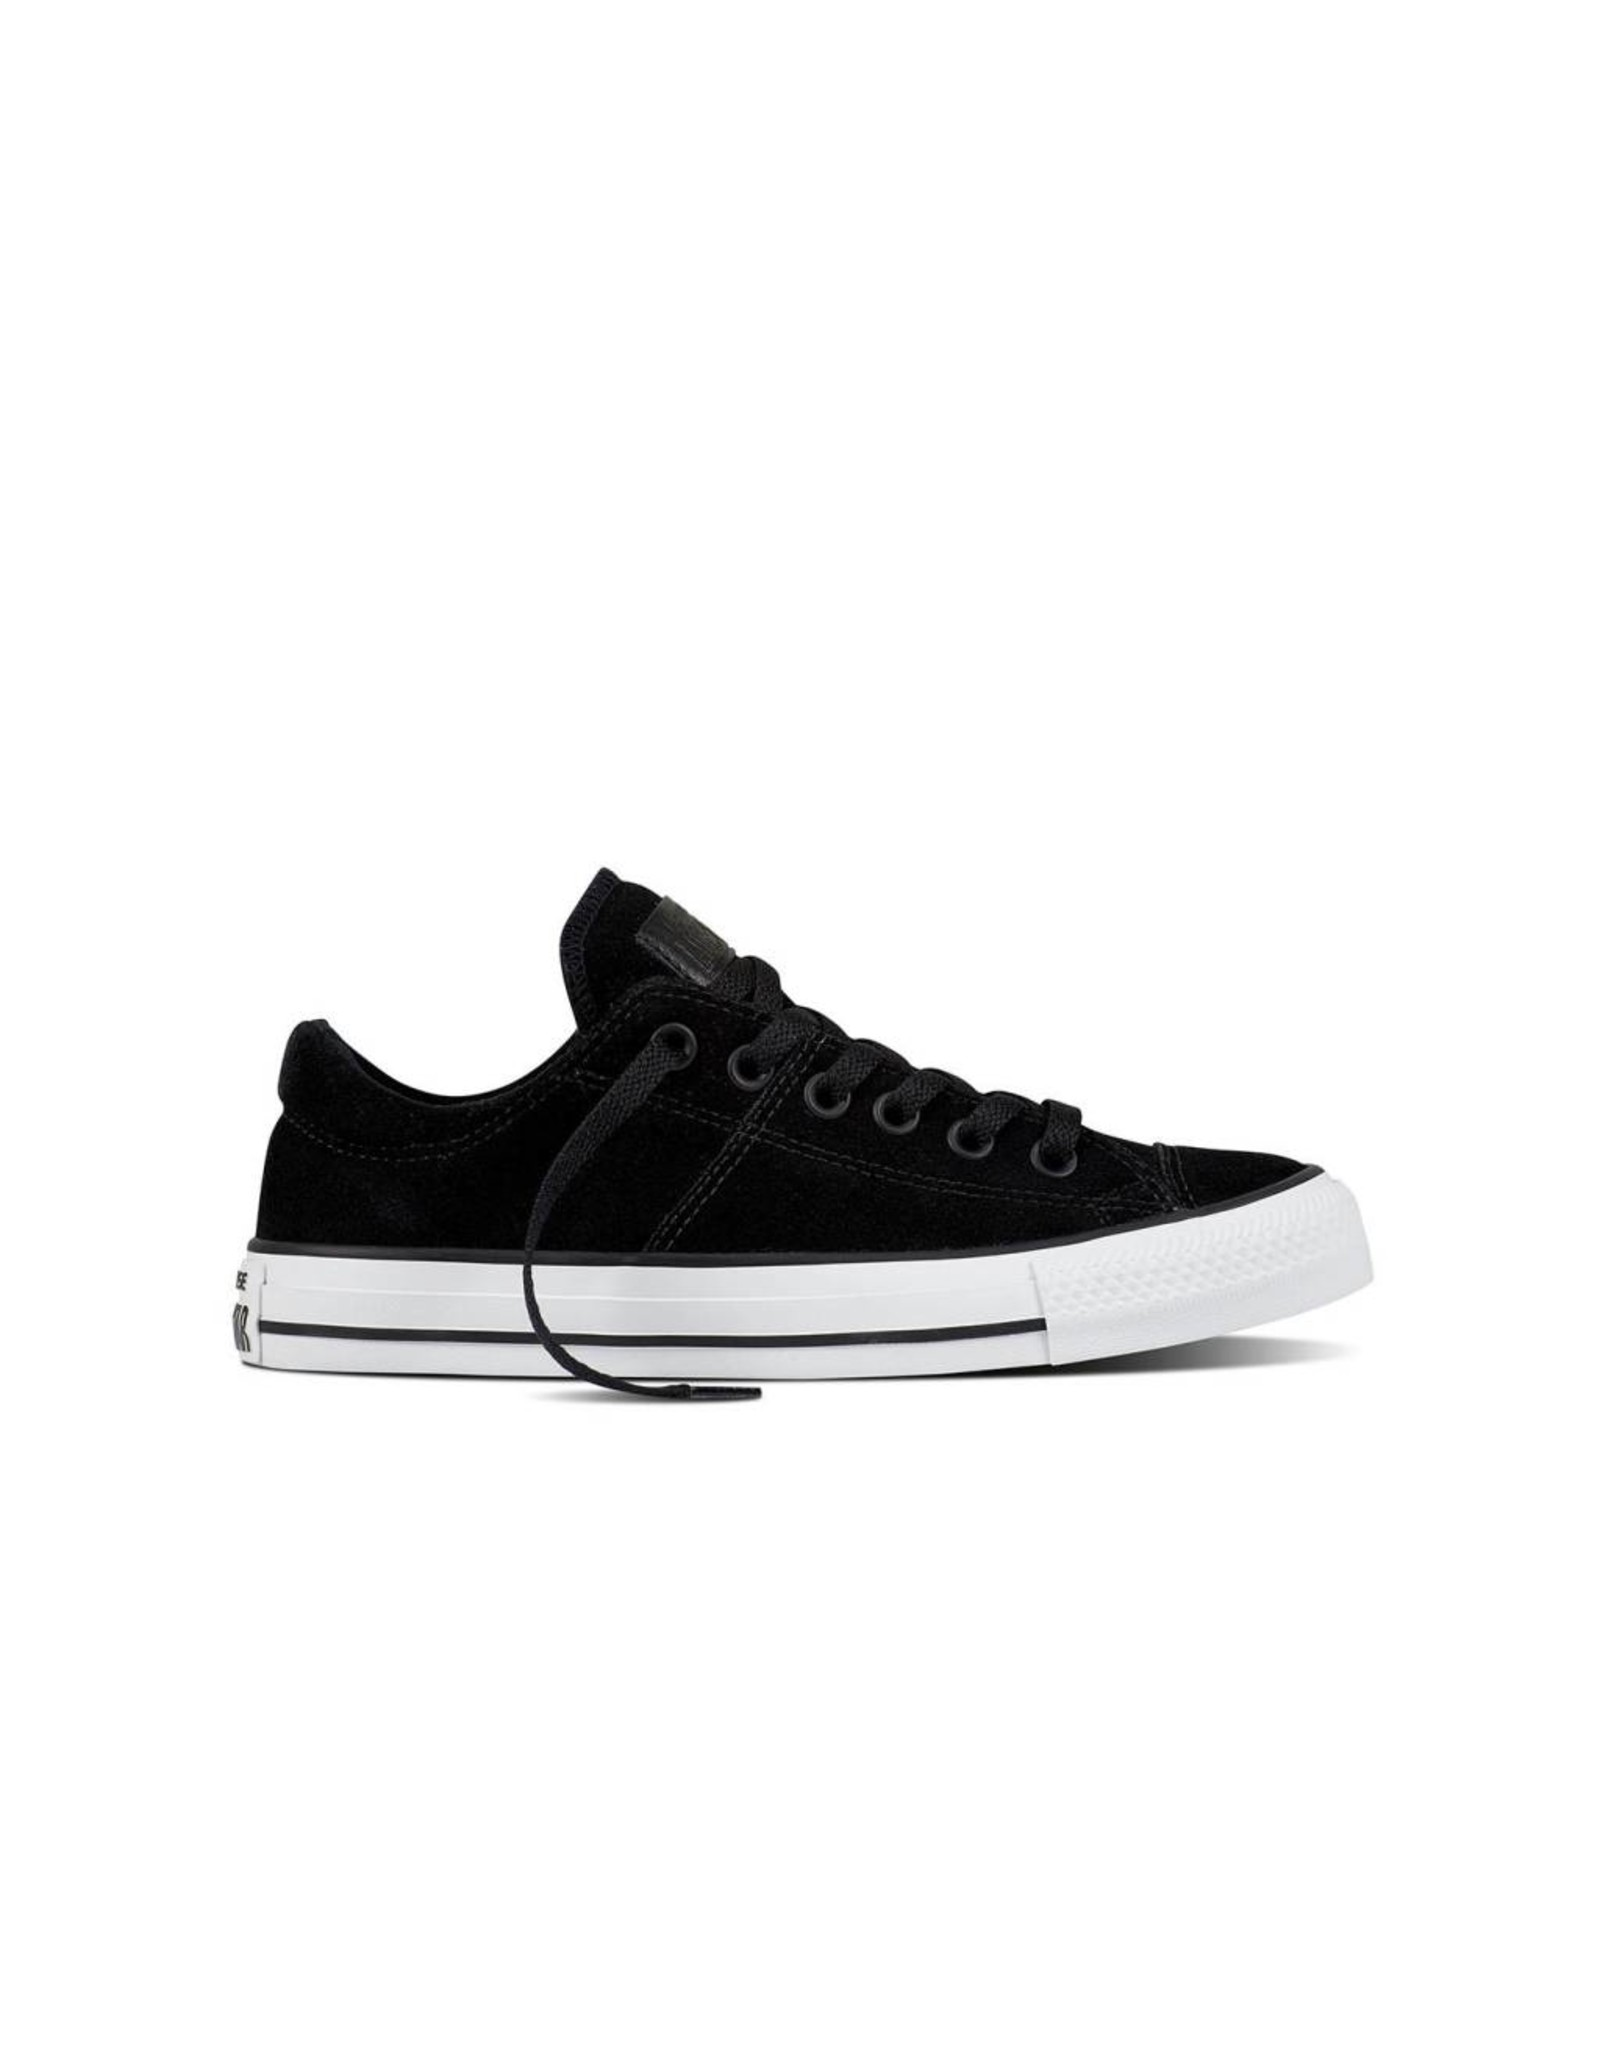 CONVERSE CHUCK TAYLOR MADISON OX SUEDE BLACK/BLACK/WHITE CS11B-557978C